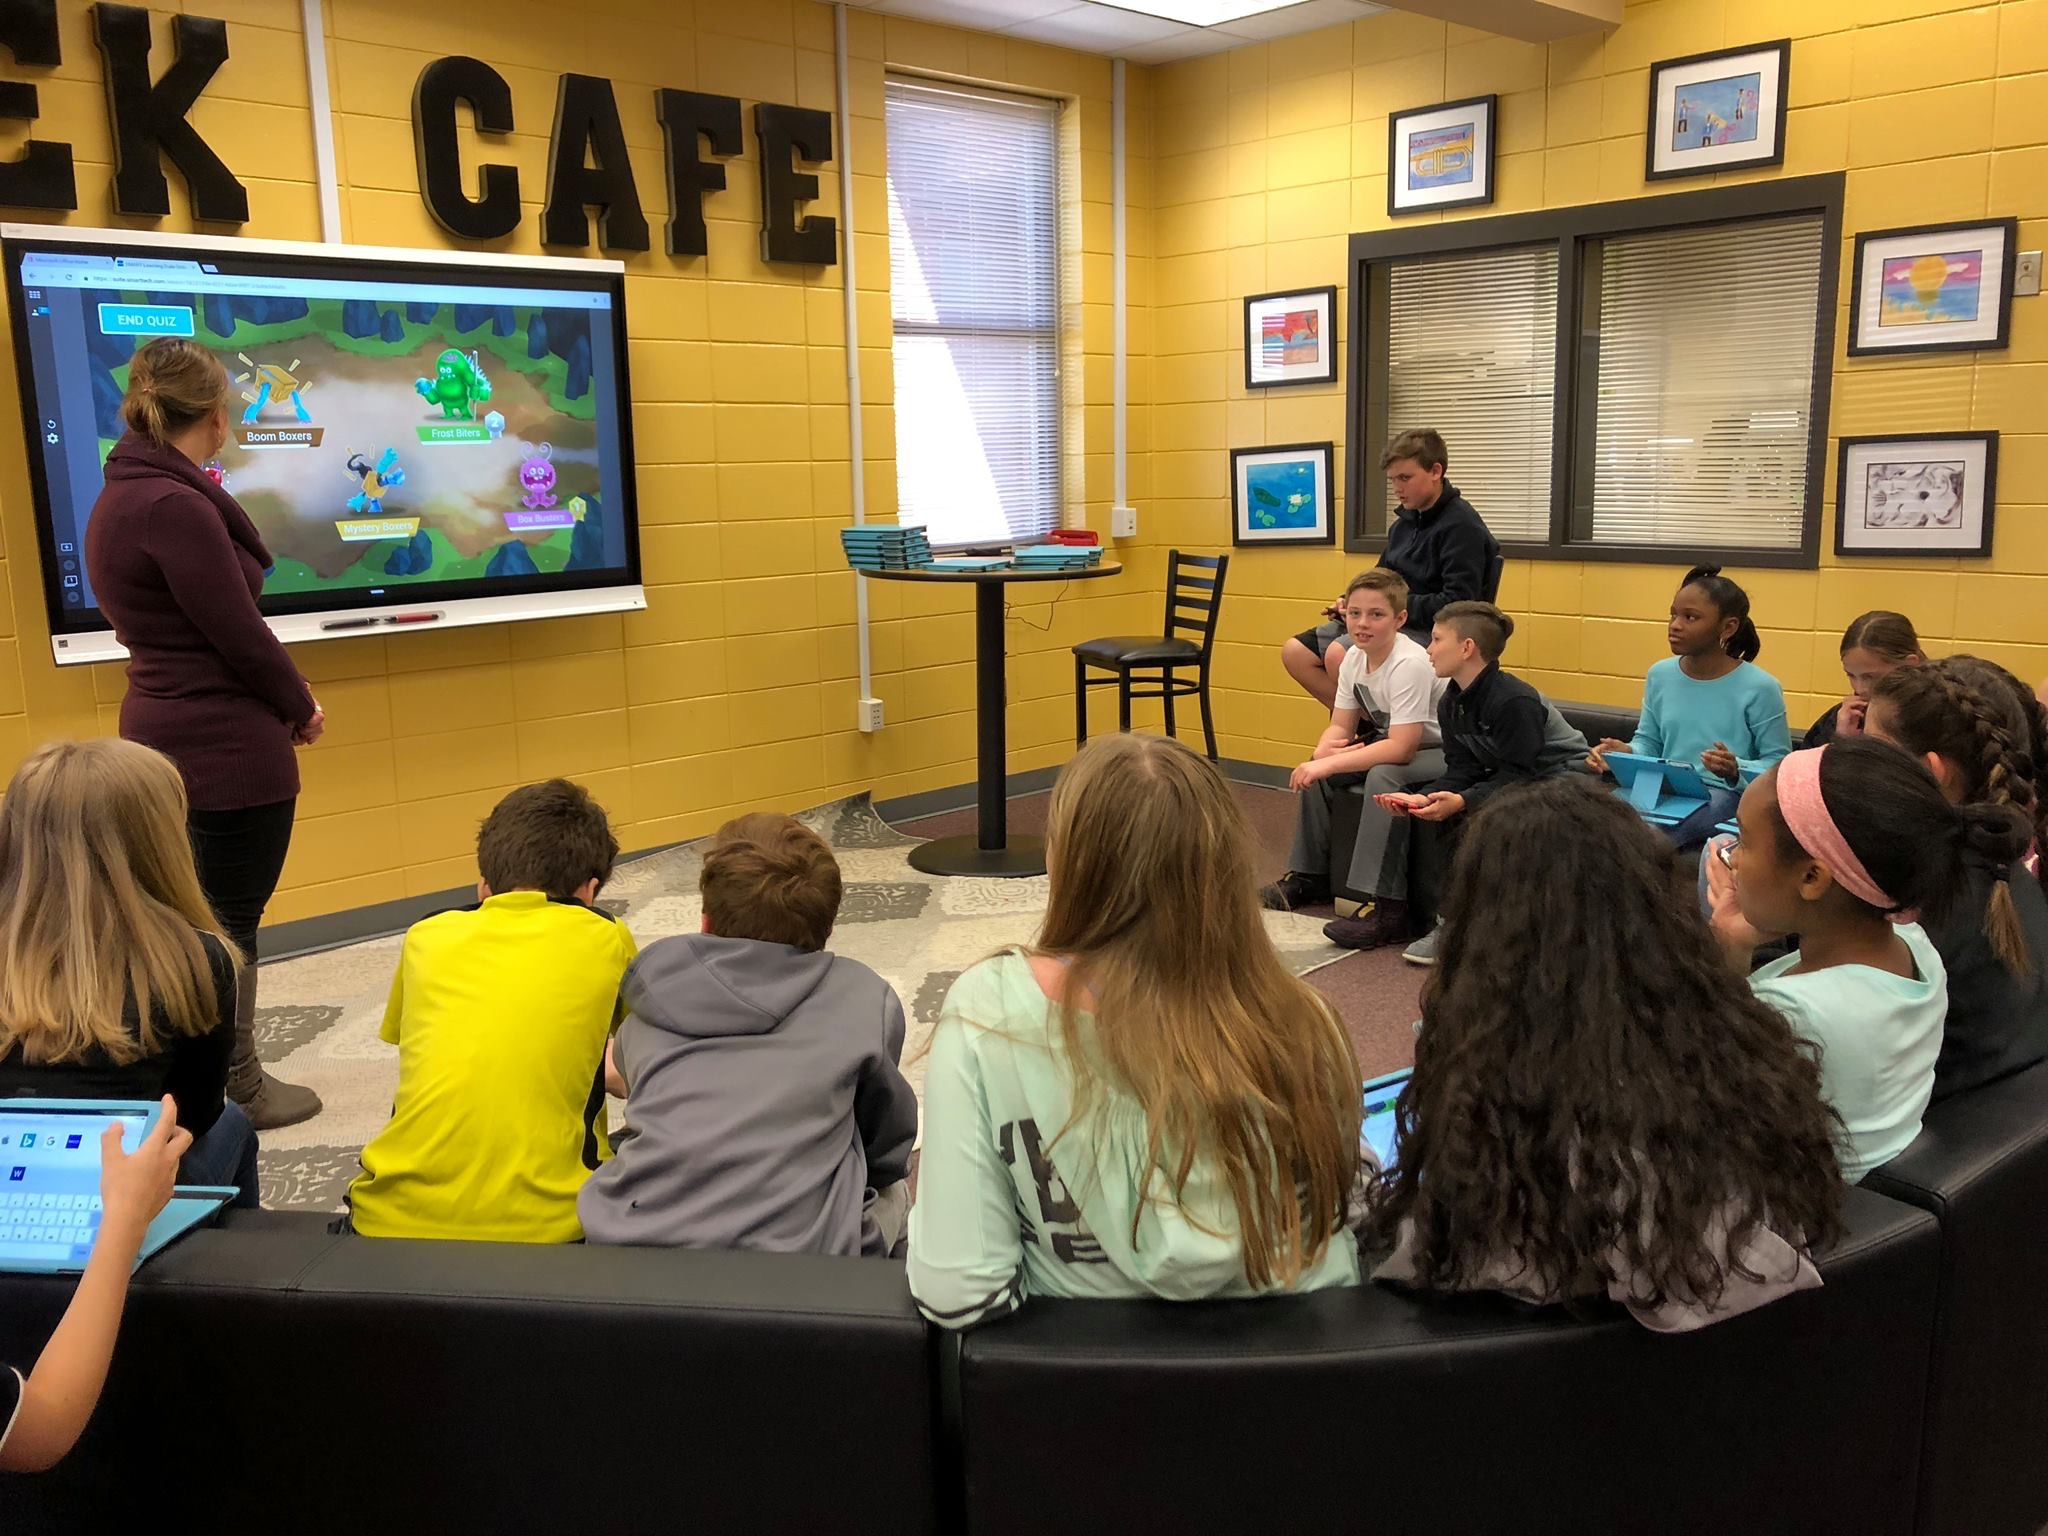 using technology in the Creek Cafe